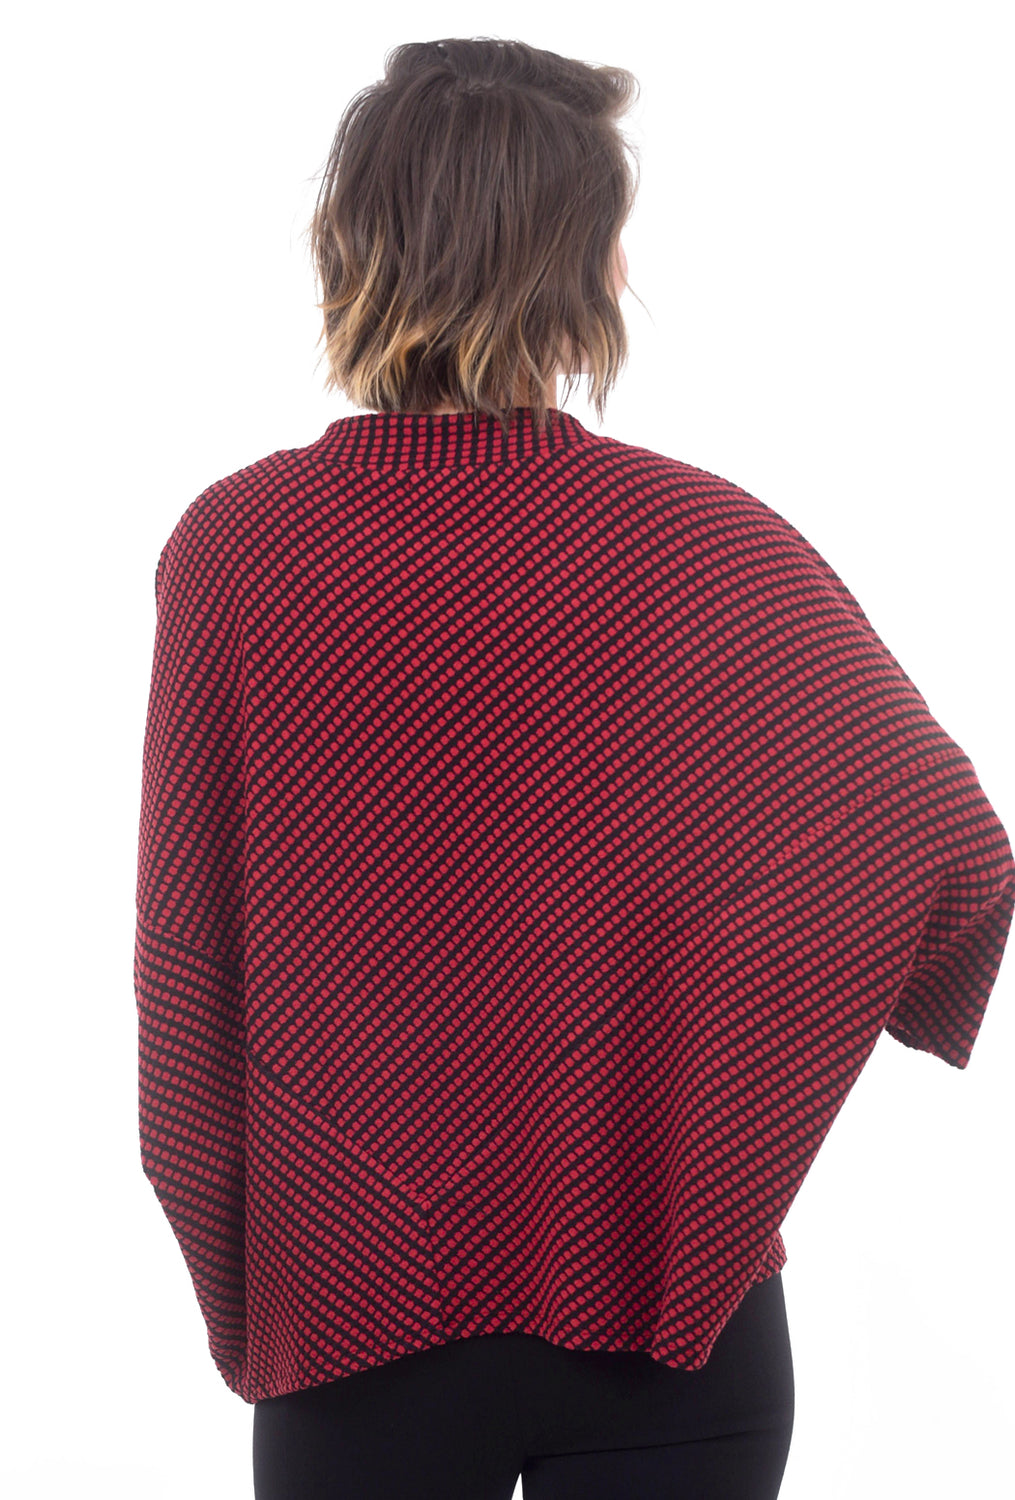 Habitat Clothing Dot Fleece Cozy Poncho, Cabernet